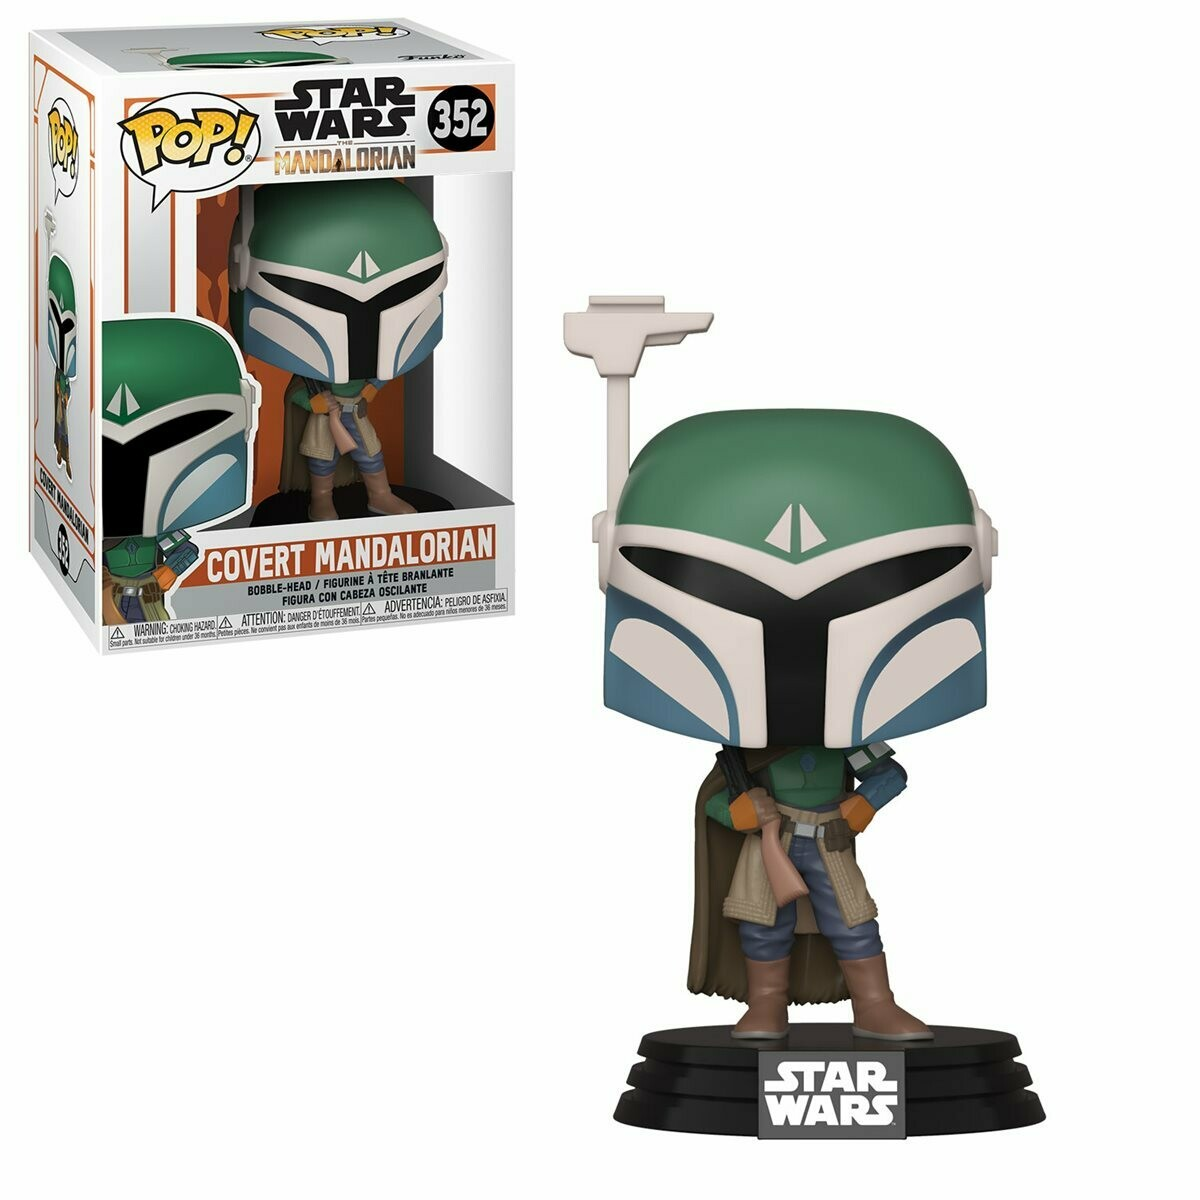 Funko Star Wars: The Mandalorian Covert Mandalorian Pop! Vinyl Figure